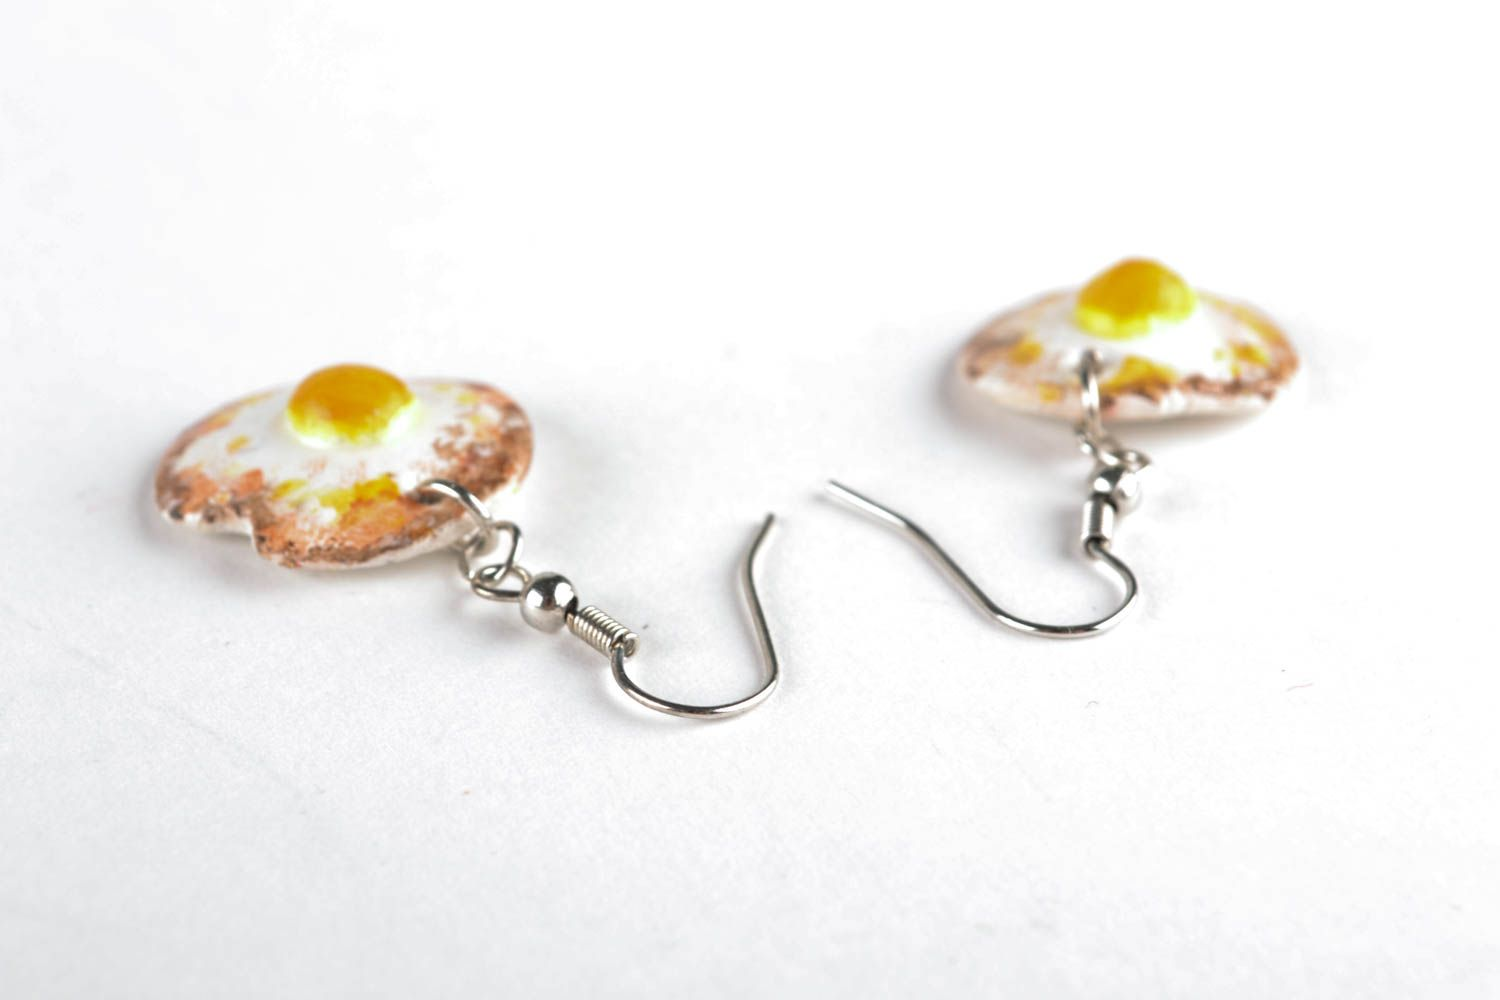 Polymer clay earrings in the shape of fried eggs photo 3